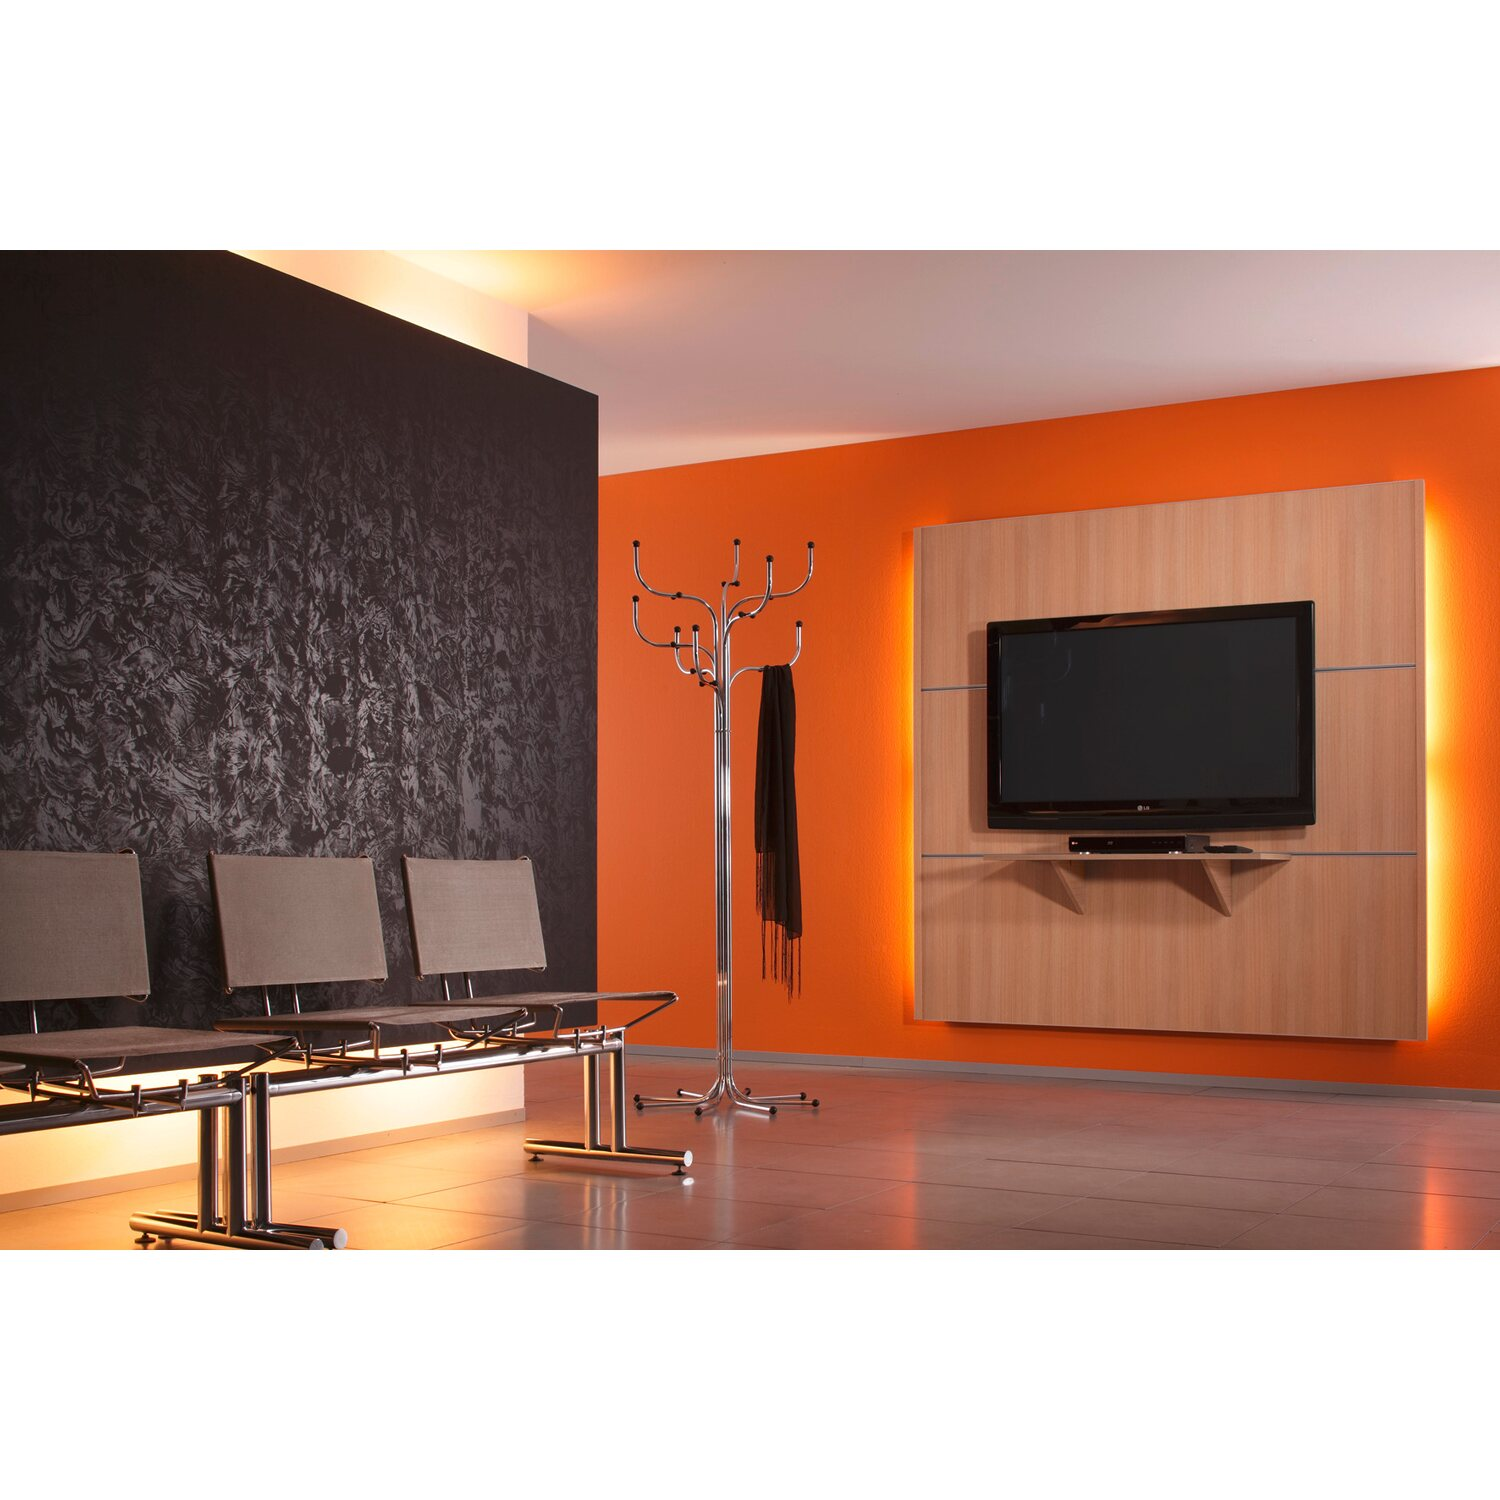 cinewall mediaboard toledo kaufen bei obi. Black Bedroom Furniture Sets. Home Design Ideas